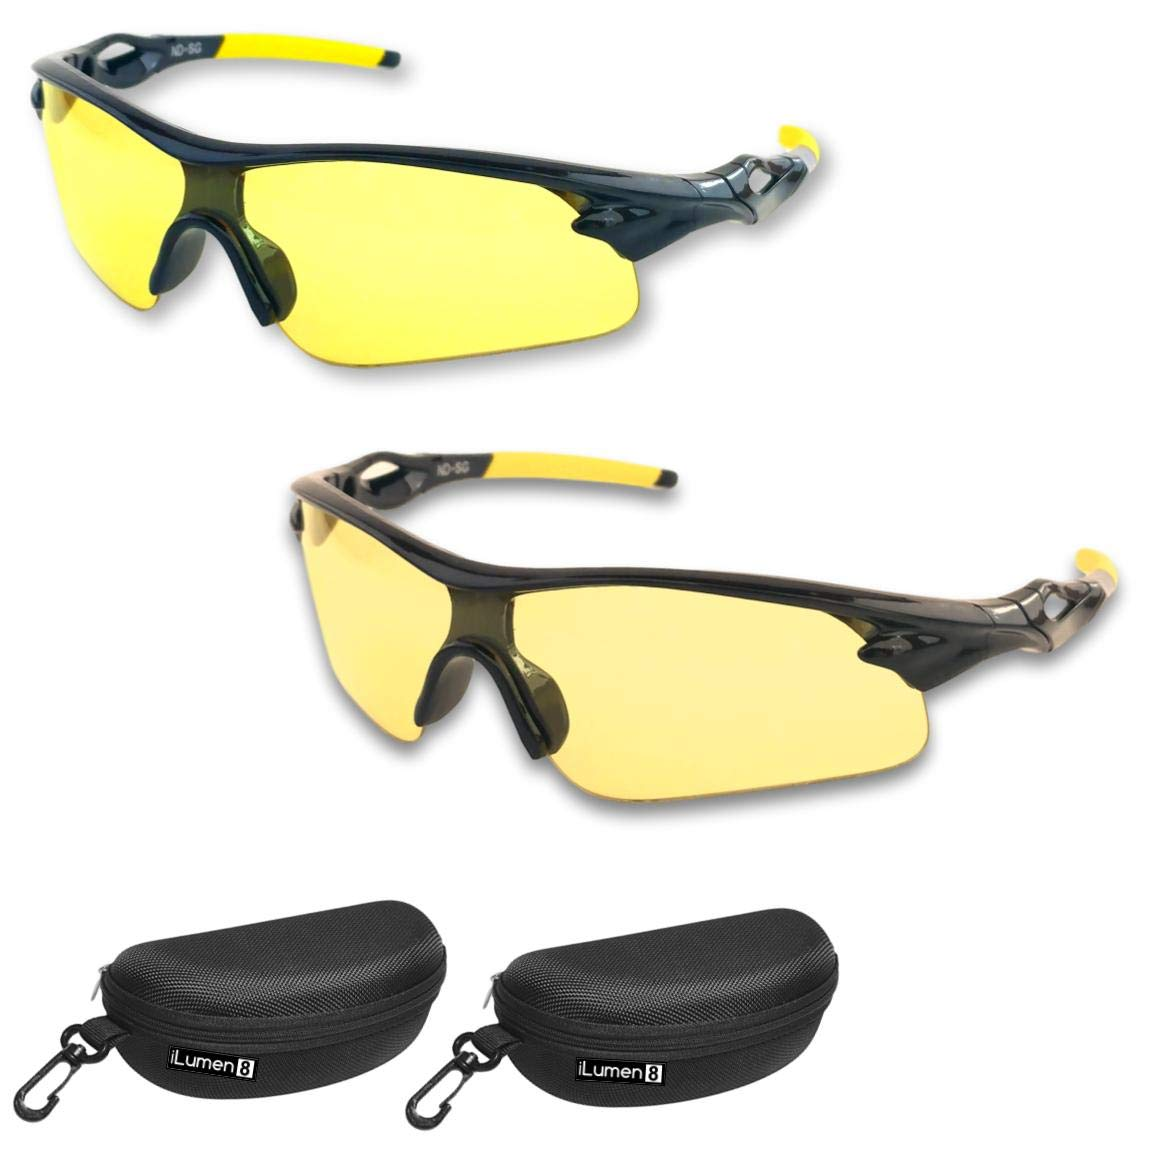 iLumen8 Best Shooting Glasses UV Blacklight Flashlight Yellow Safety Eye Protection See Dog Cat Urine with Amber Black Lights Night Vision Ultraviolet (Yellow & Amber-Yellow, 2 Pair)